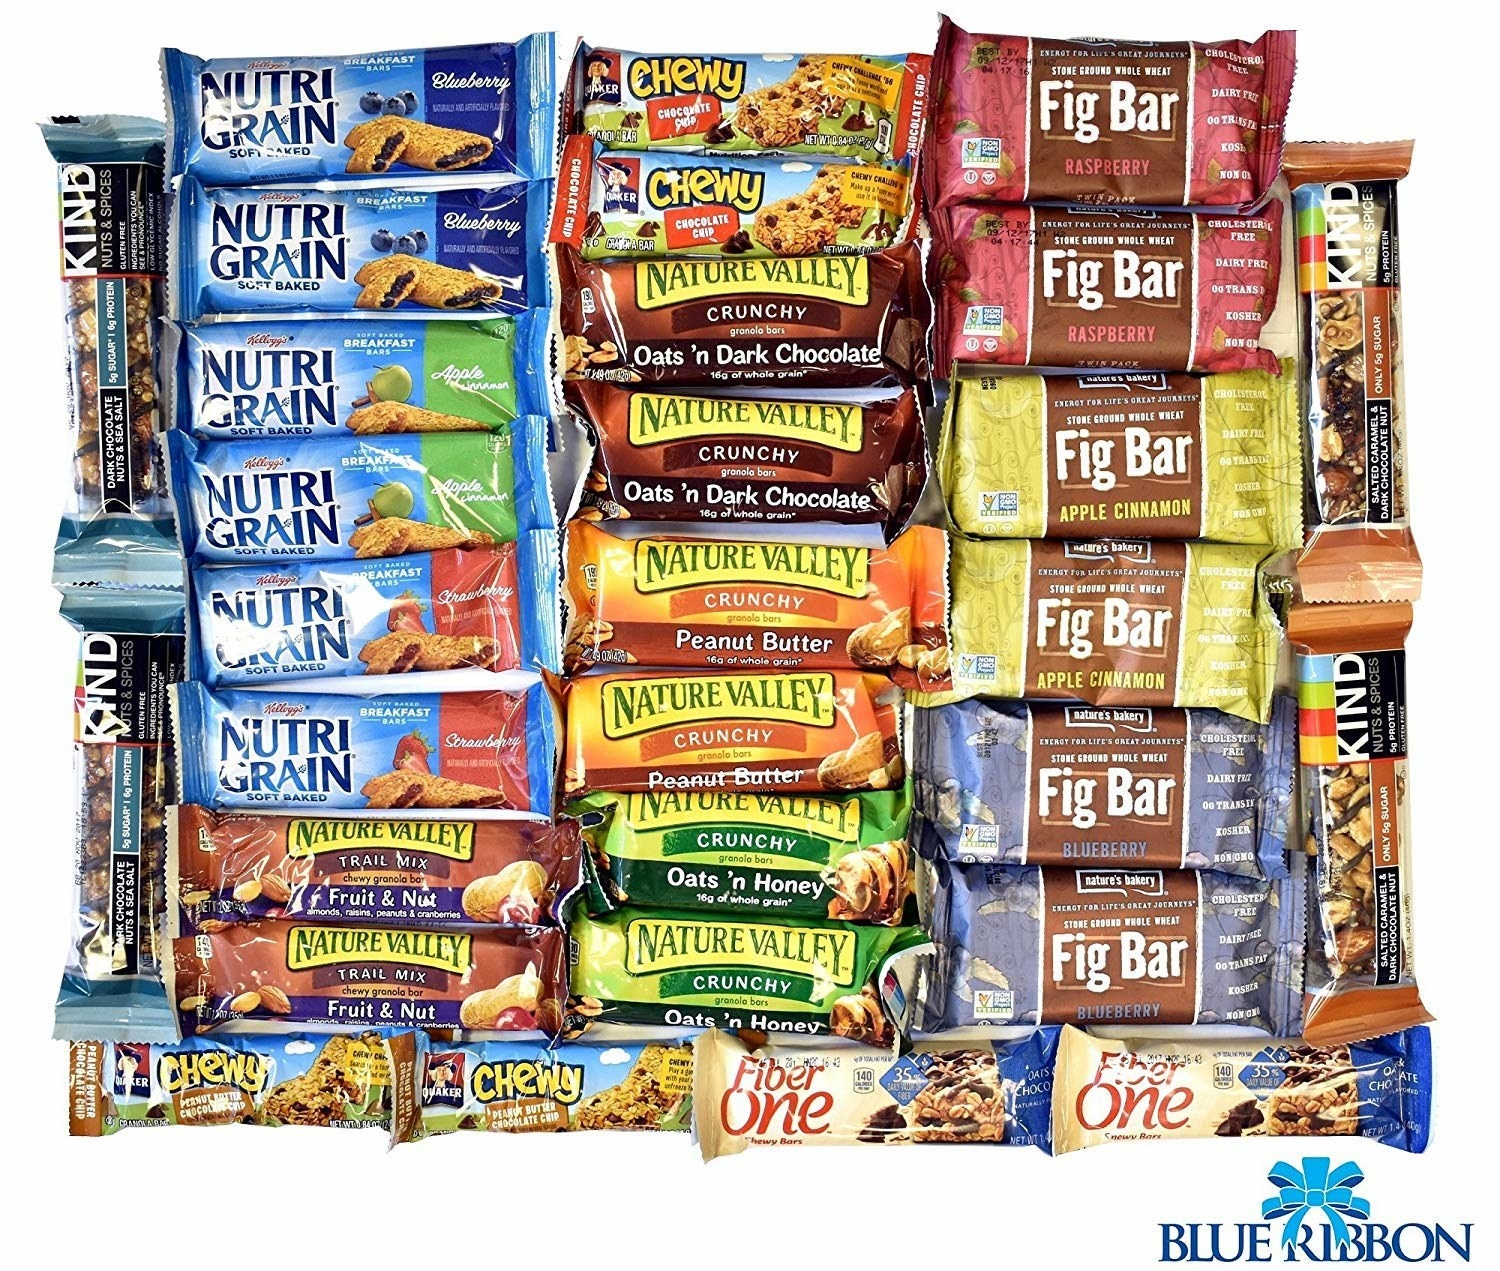 assorted bars like chewy, nutri grain, and nature valley